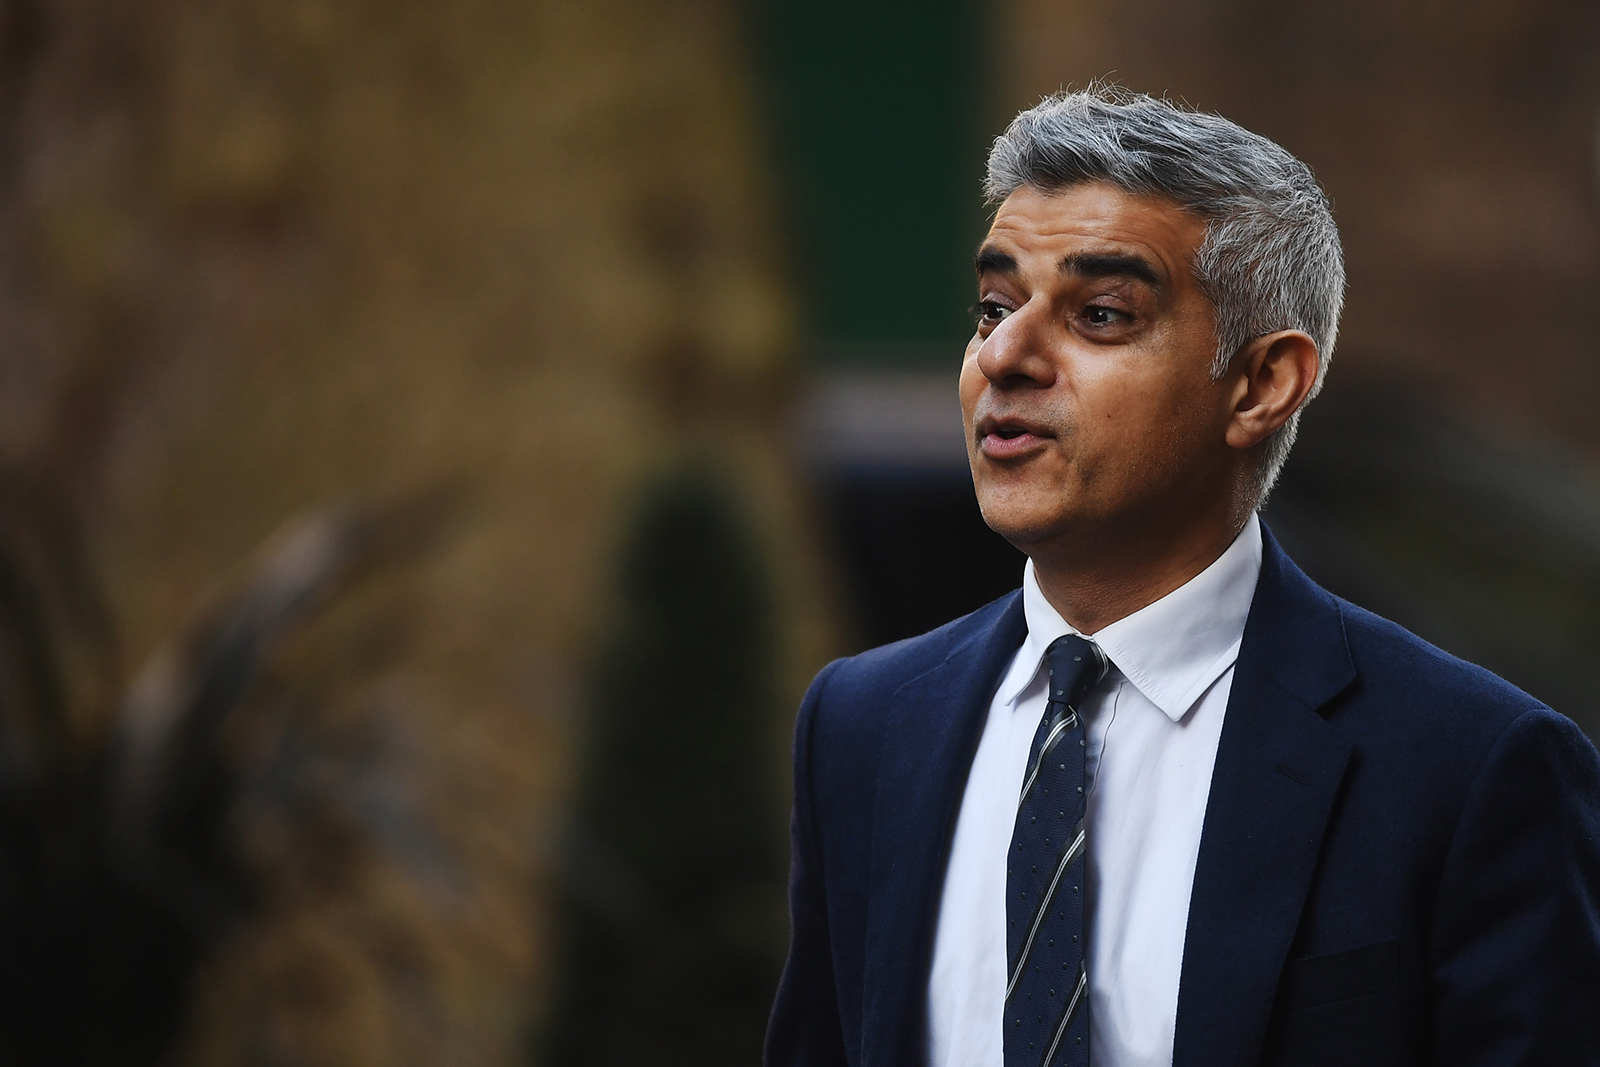 London Mayor Sadiq Khan arrives at Downing Street ahead of a government briefing on March 16, 2020 in London, Eng